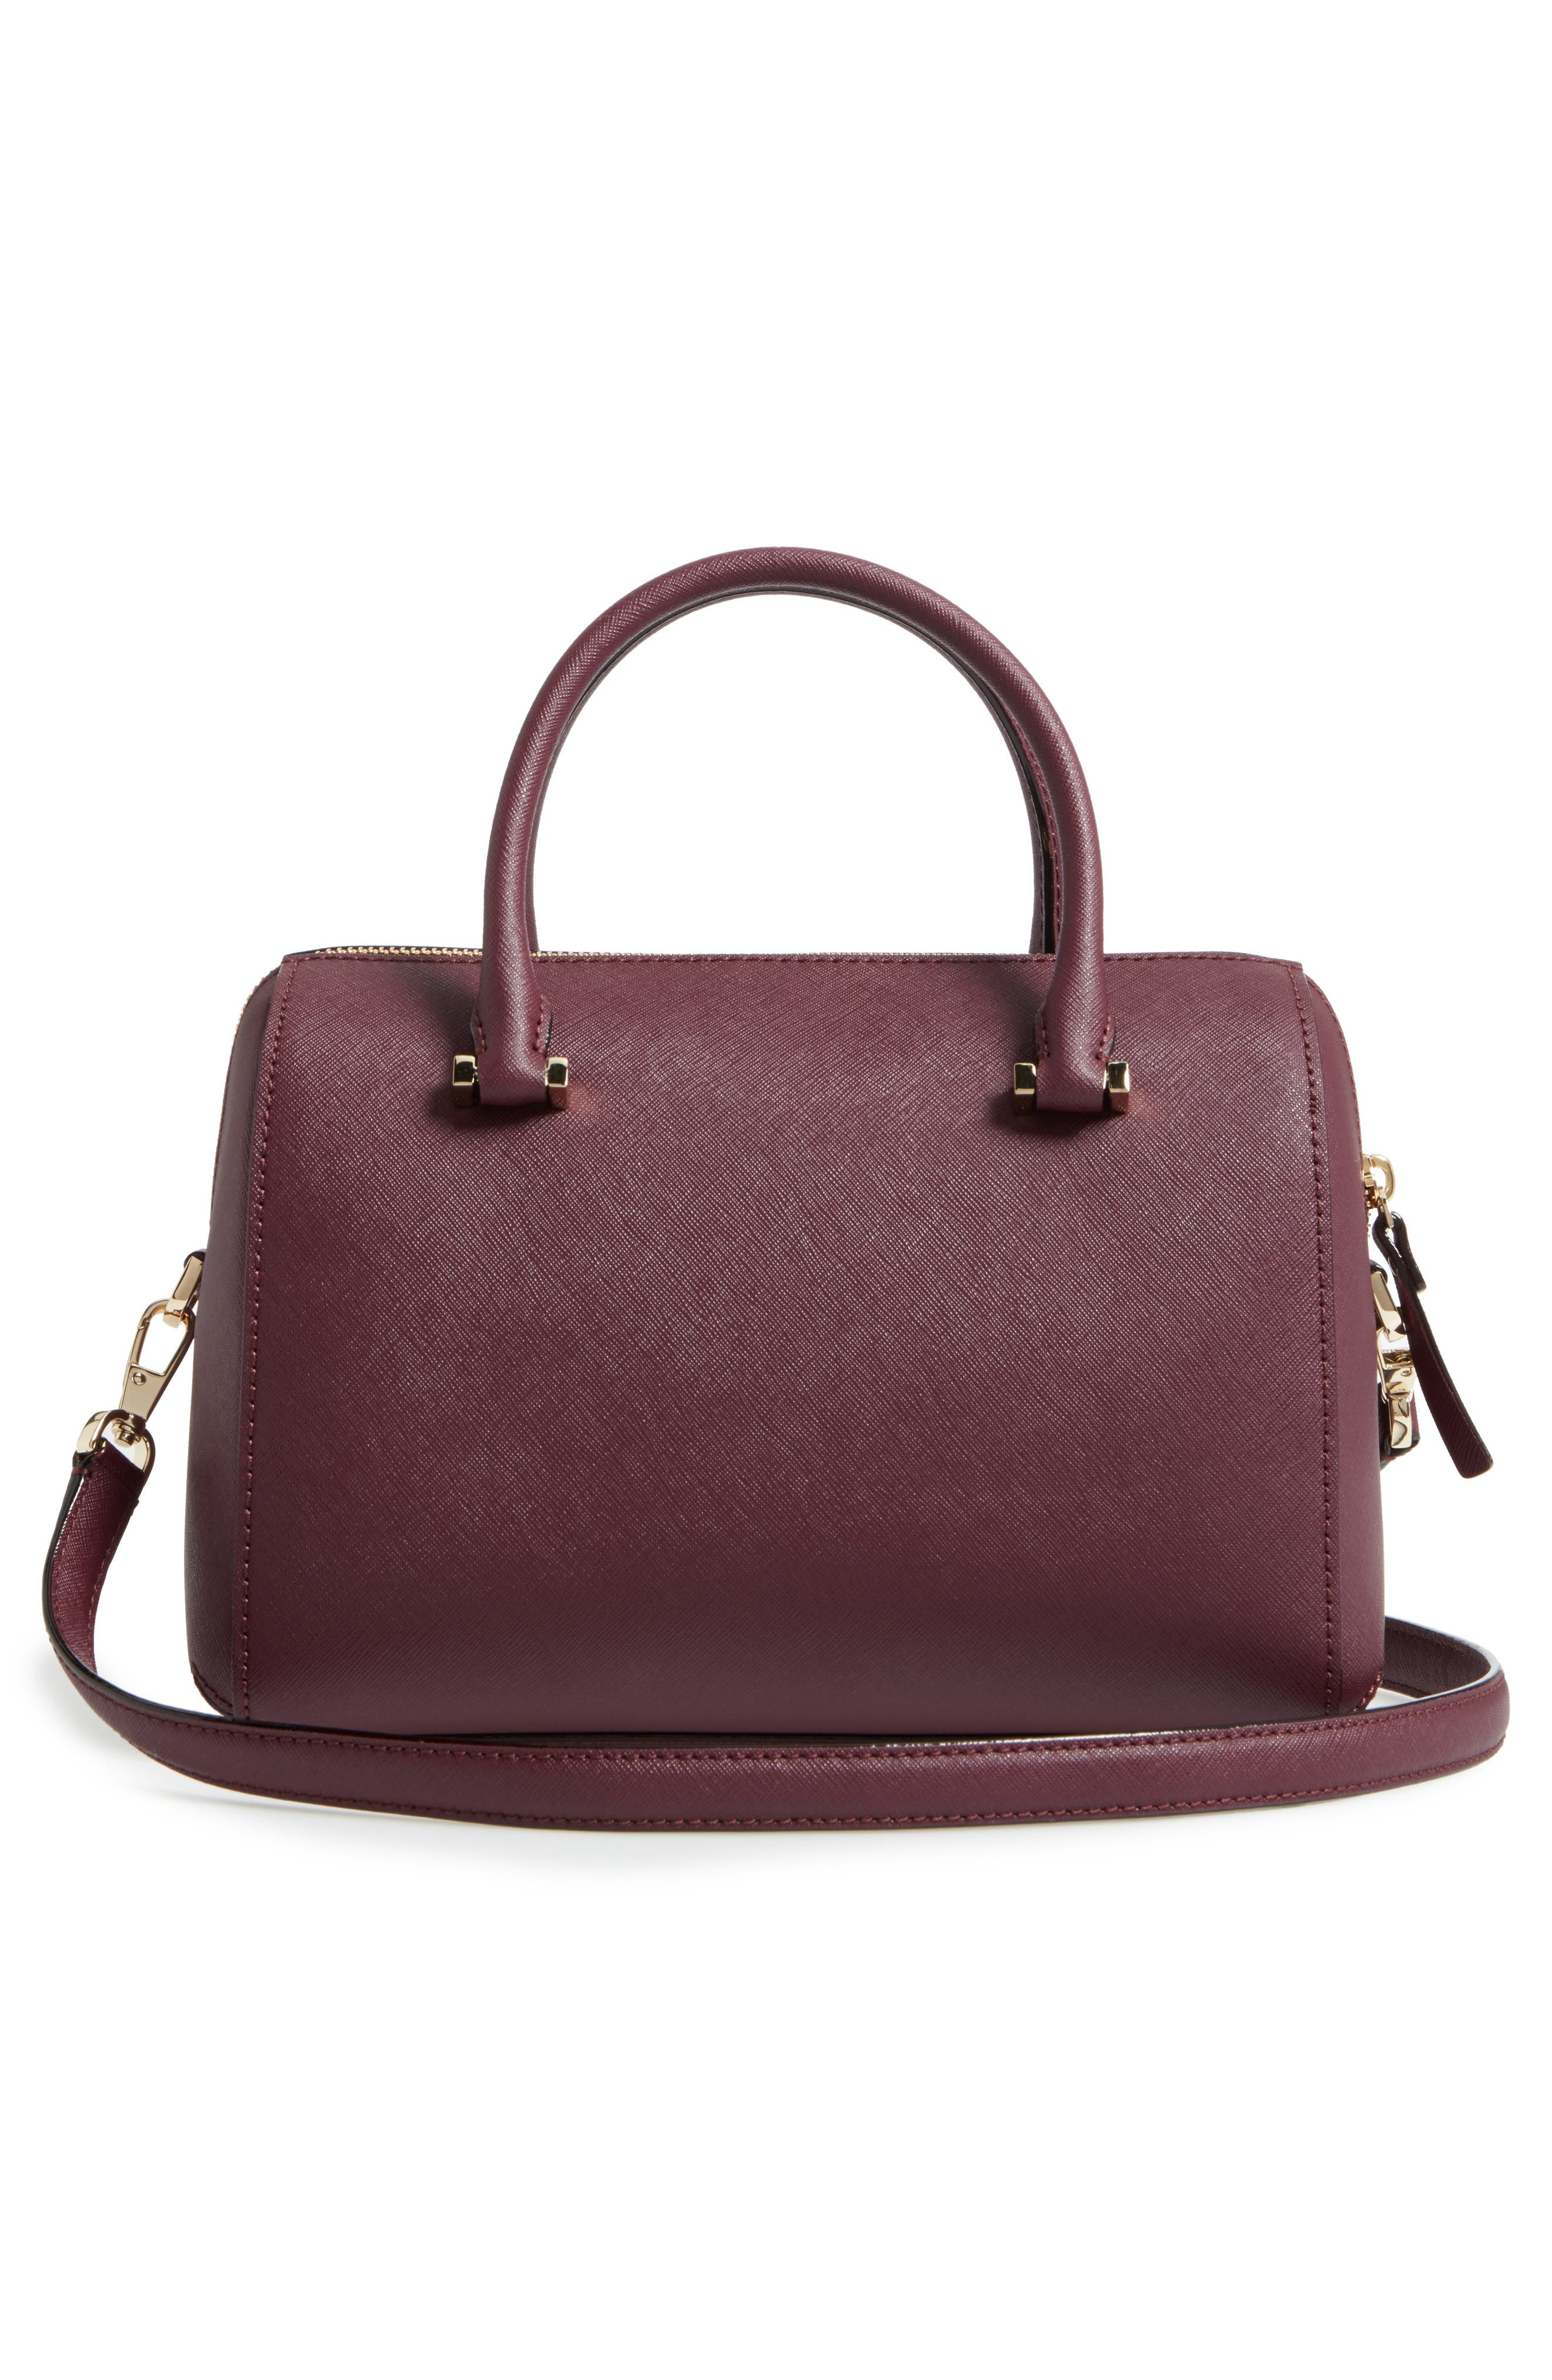 Alternate Image 3  - kate spade new york cameron street - large lane leather satchel